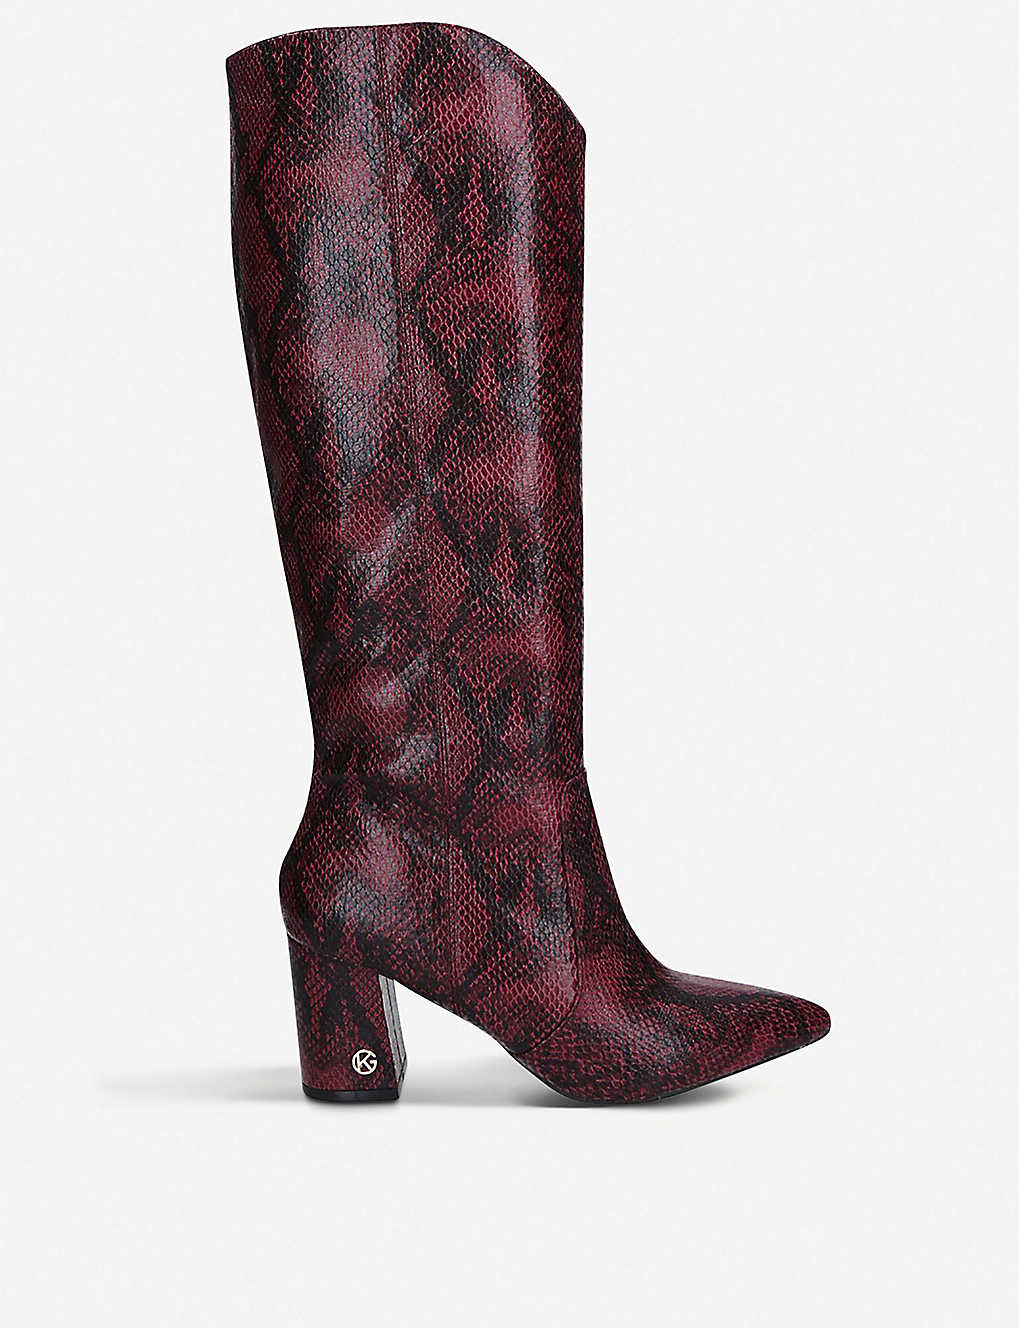 KG KURT GEIGER: Sunny snakeskin-print faux-leather knee-high boots